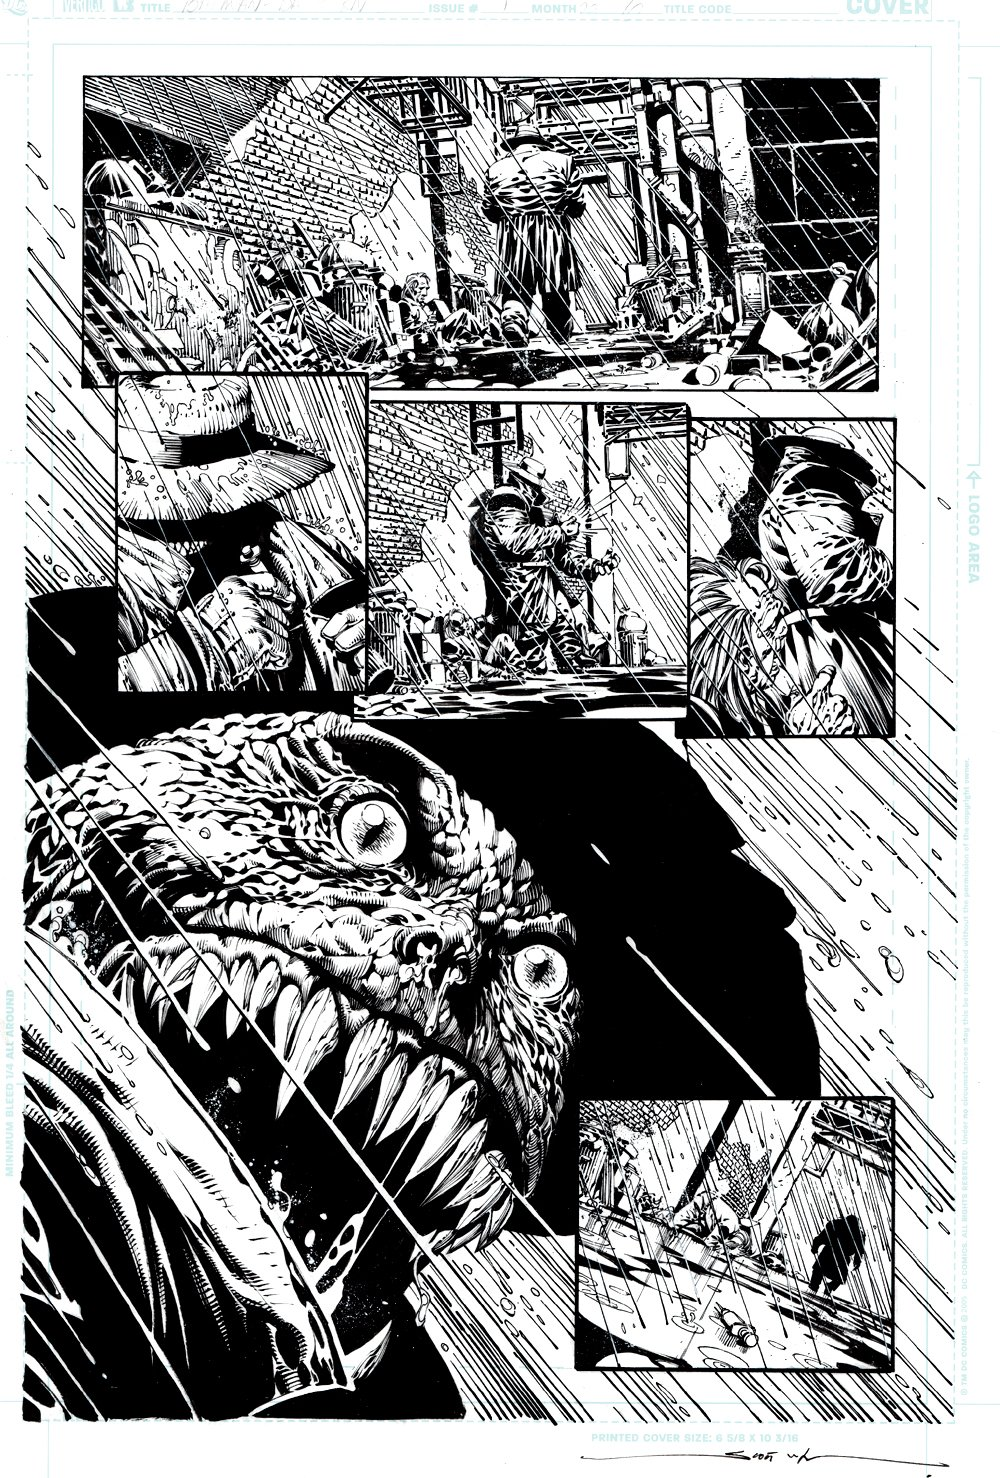 Batman: The Dark Knight #1 p 10 (FIRST ISSUE! AWESOME KILLER CROC!) 2011